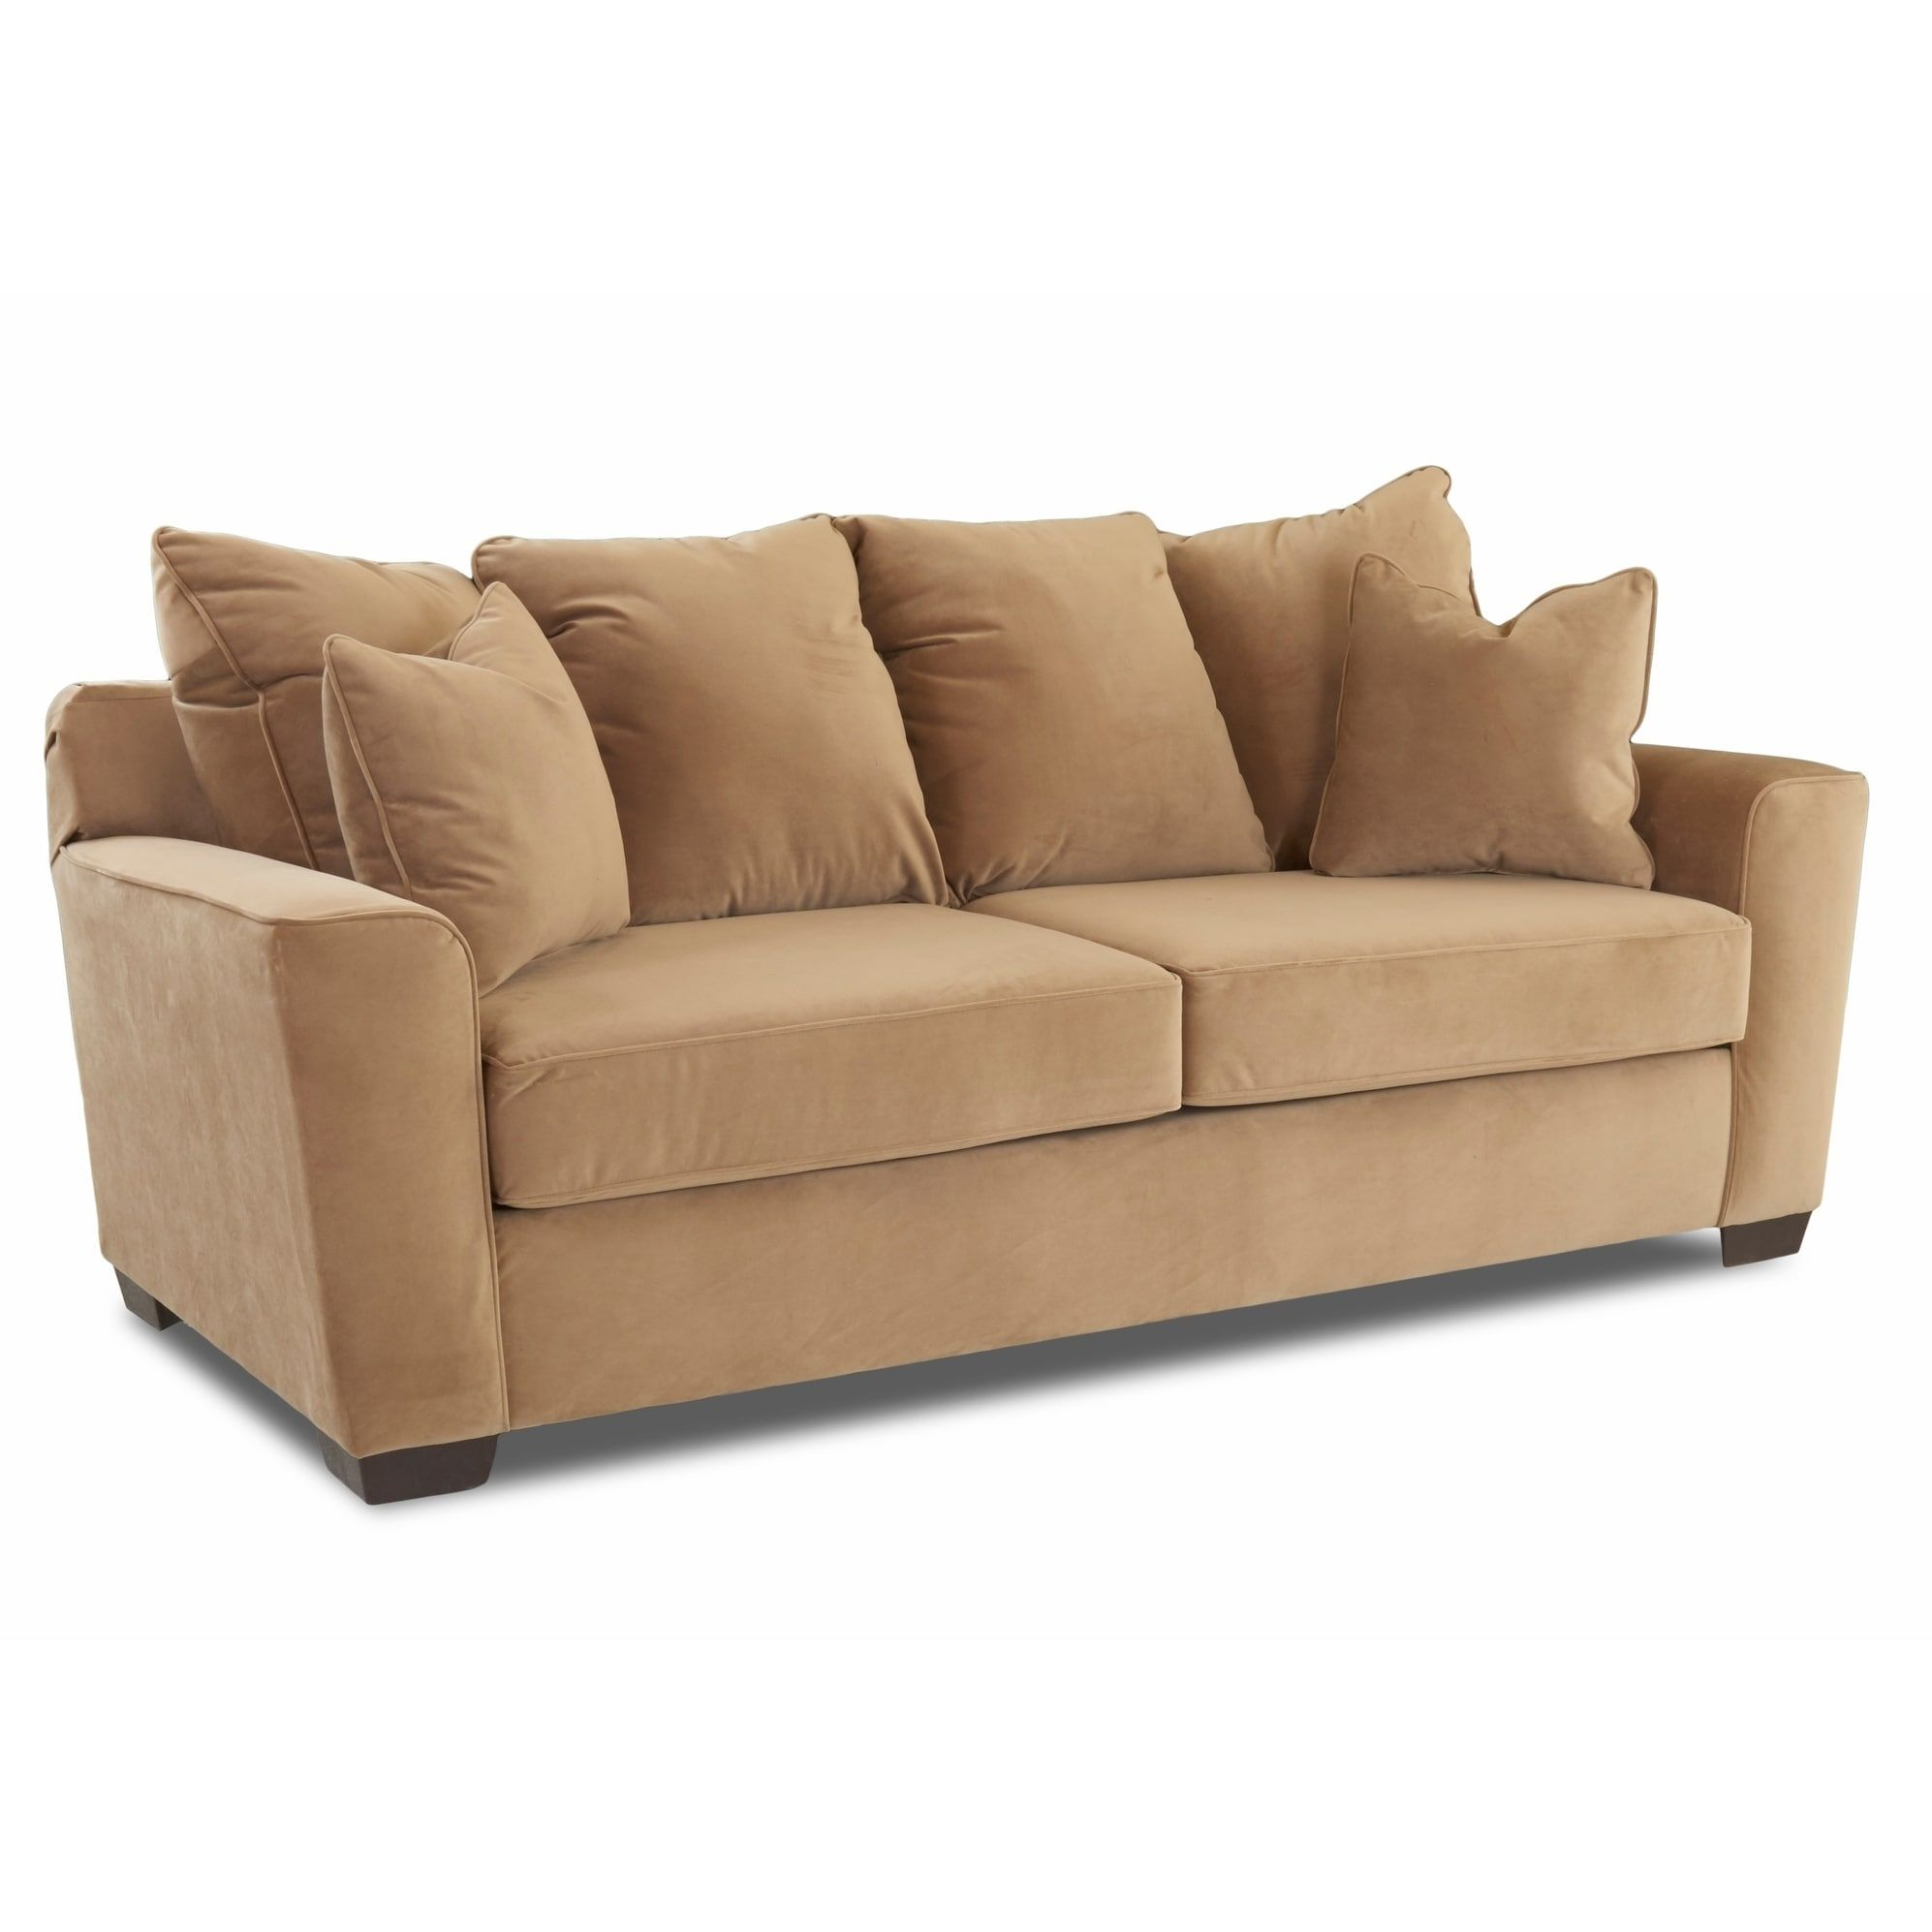 microsuede bauhaus upholstery microfiber fabric tan couch bed sofa interior mineral